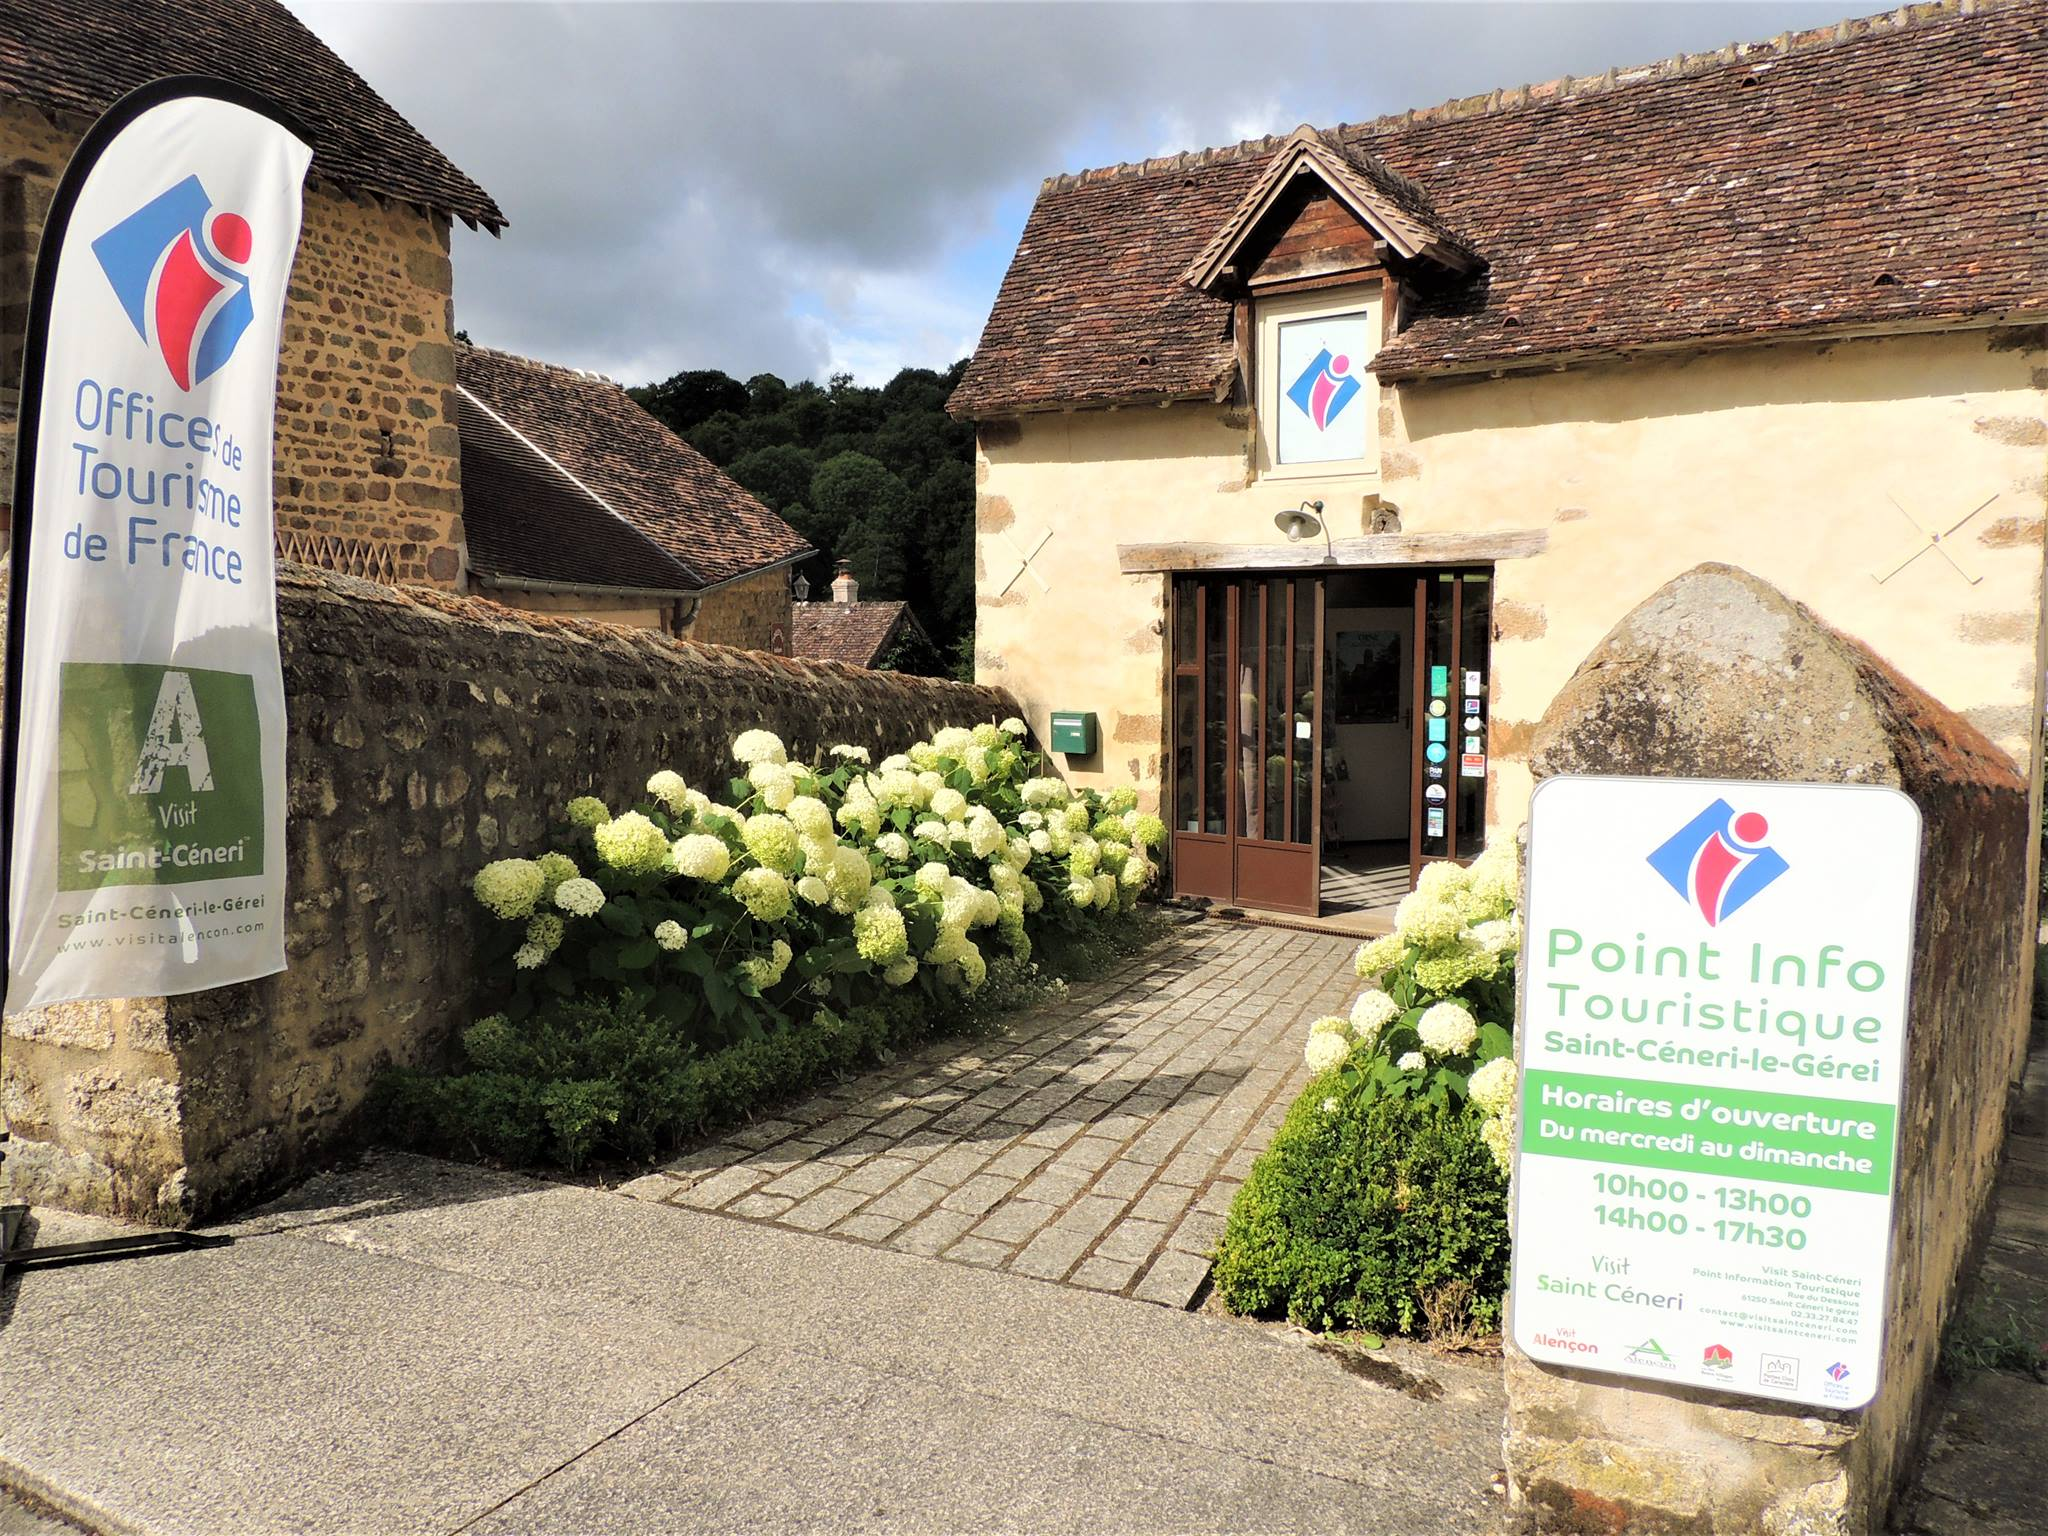 Point Info Tourisme de Saint-Céneri-le-Gerei